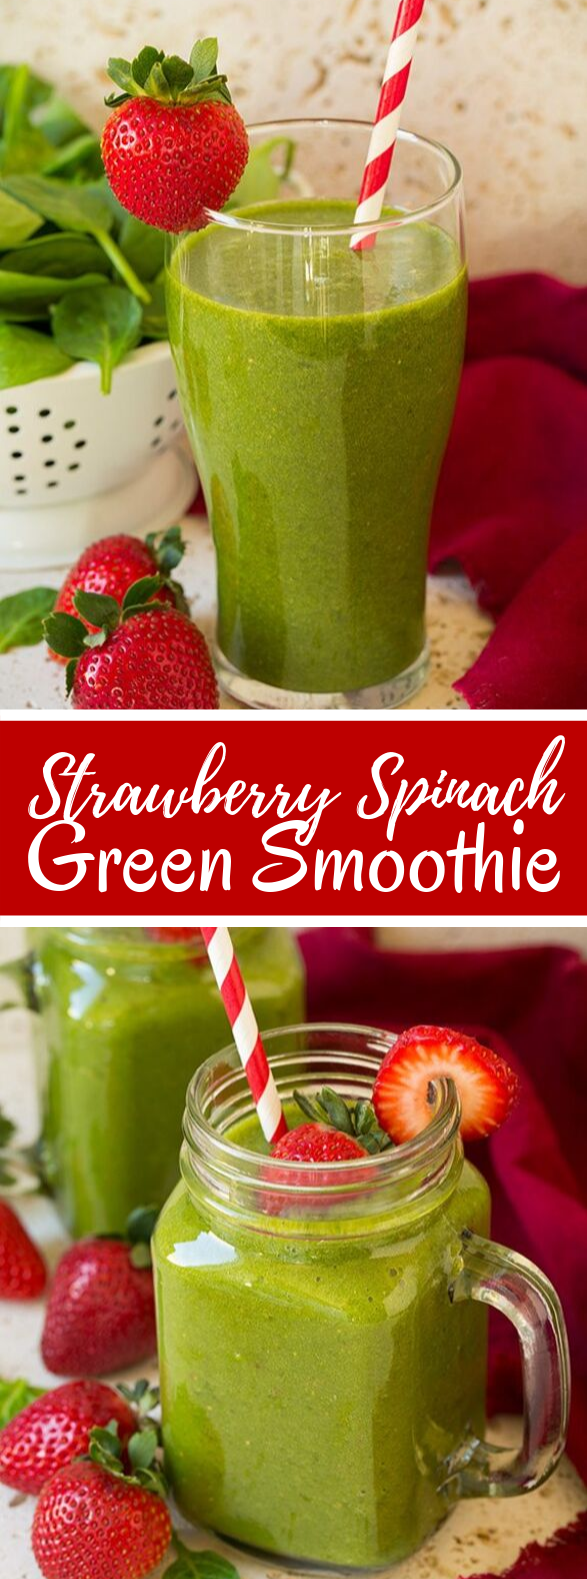 Strawberry Spinach Green Smoothie #drinks #healthy #smoothie